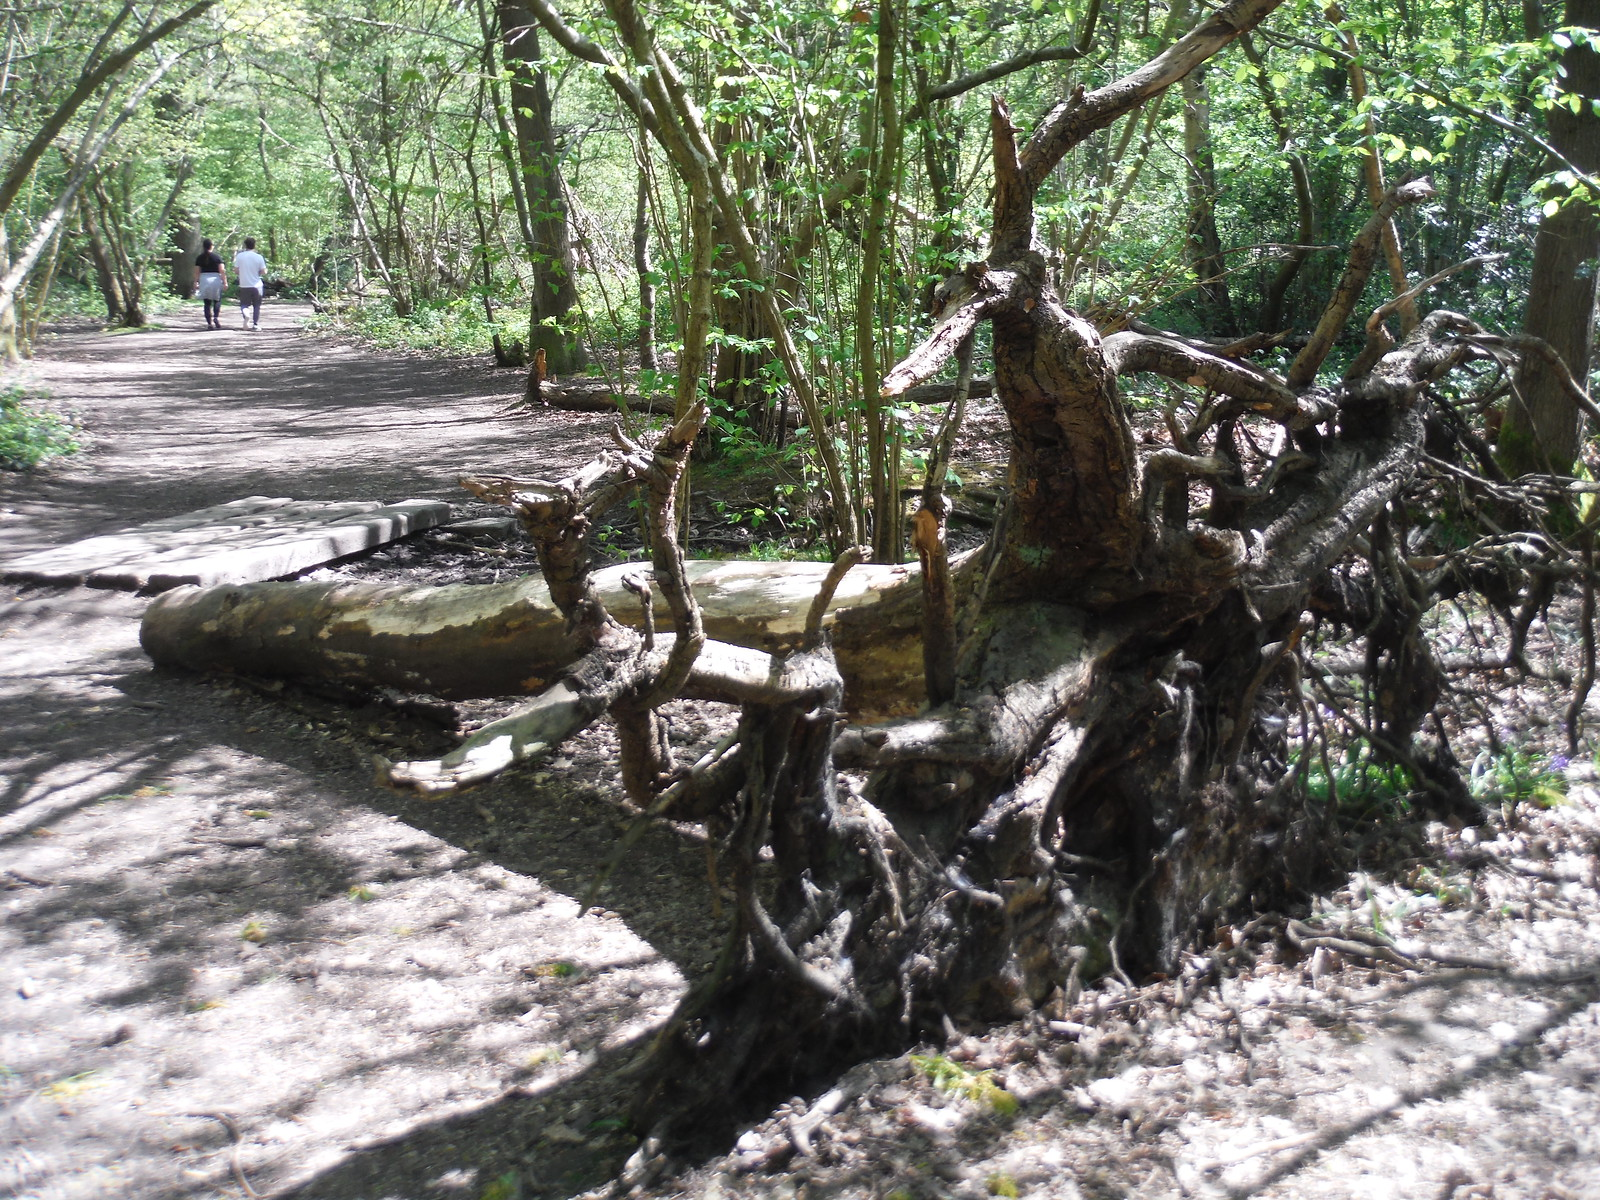 Toppled Tree in Oxleas Wood SWC Short Walk 44 - Oxleas Wood and Shooters Hill (Falconwood Circular)